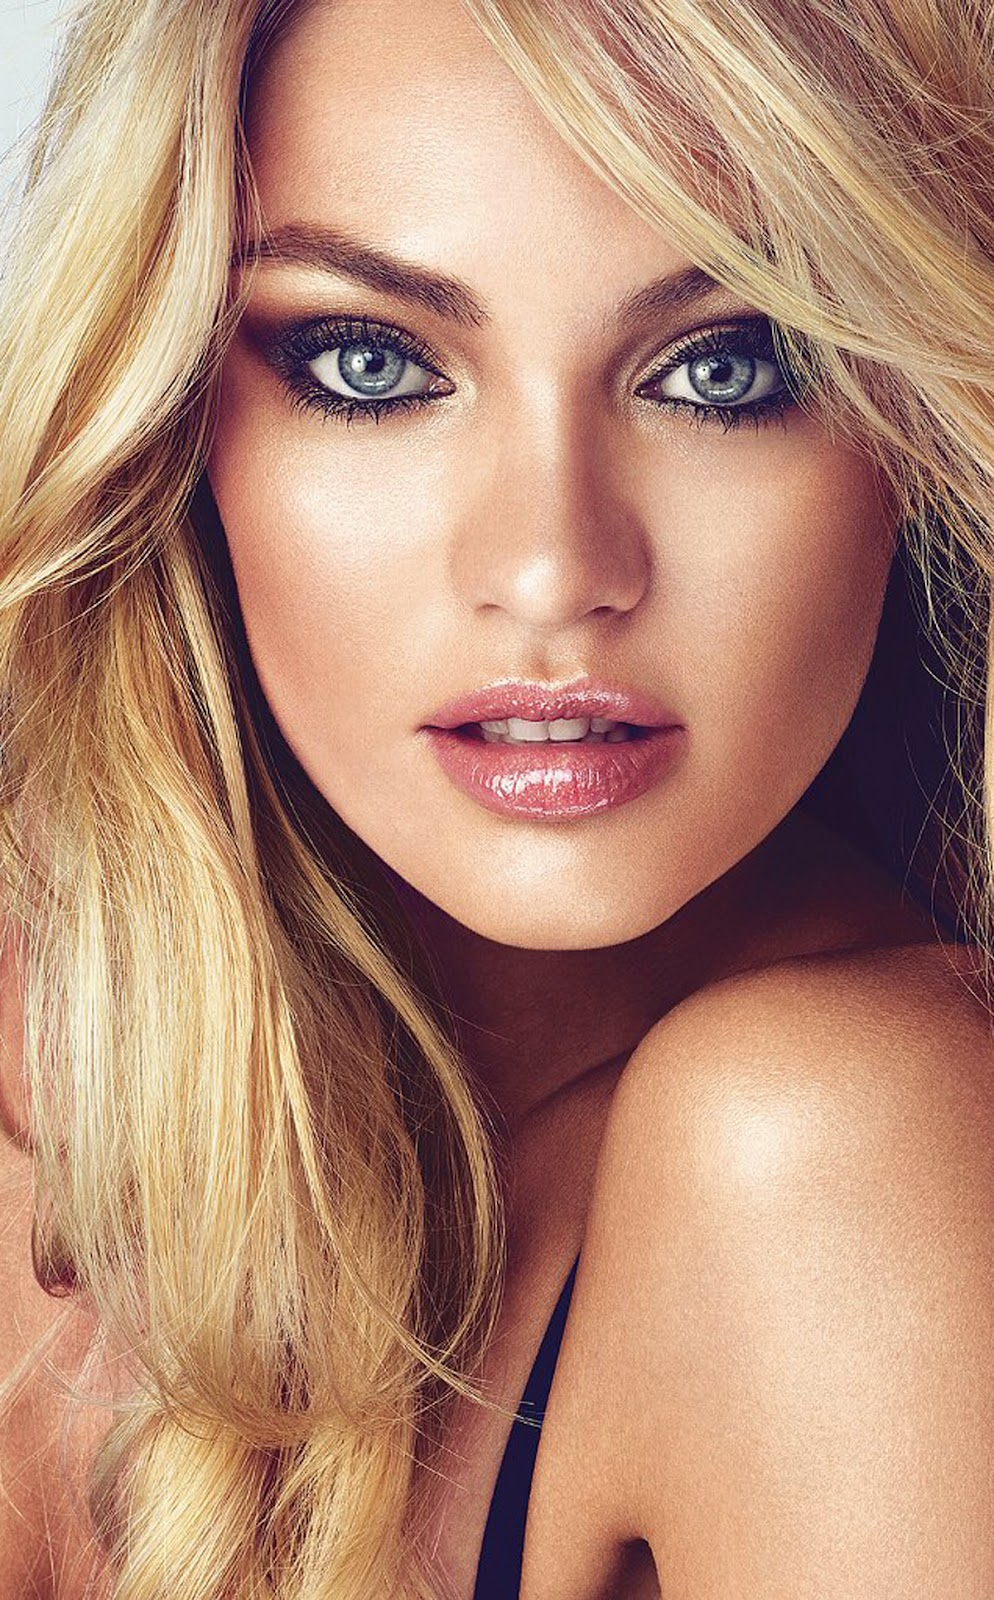 PLUS - CANDICE SWANEPOEL CLOSE UP VICTORIA'S SECRET.jpg